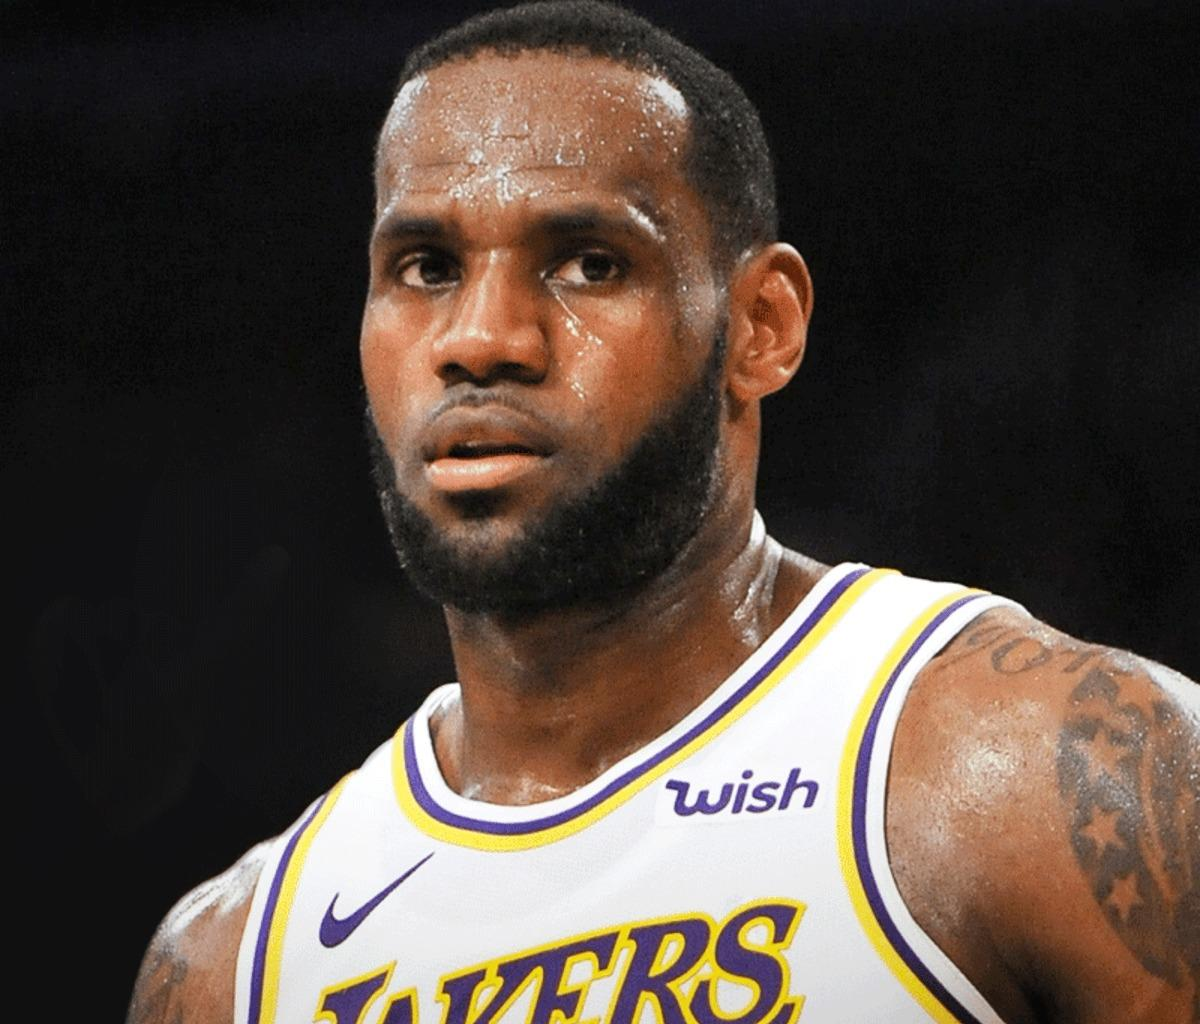 LeBron James Expresses His Frustration After Another Black Man Gets 'Targeted' By Police And Shot 7 Times In The Back!